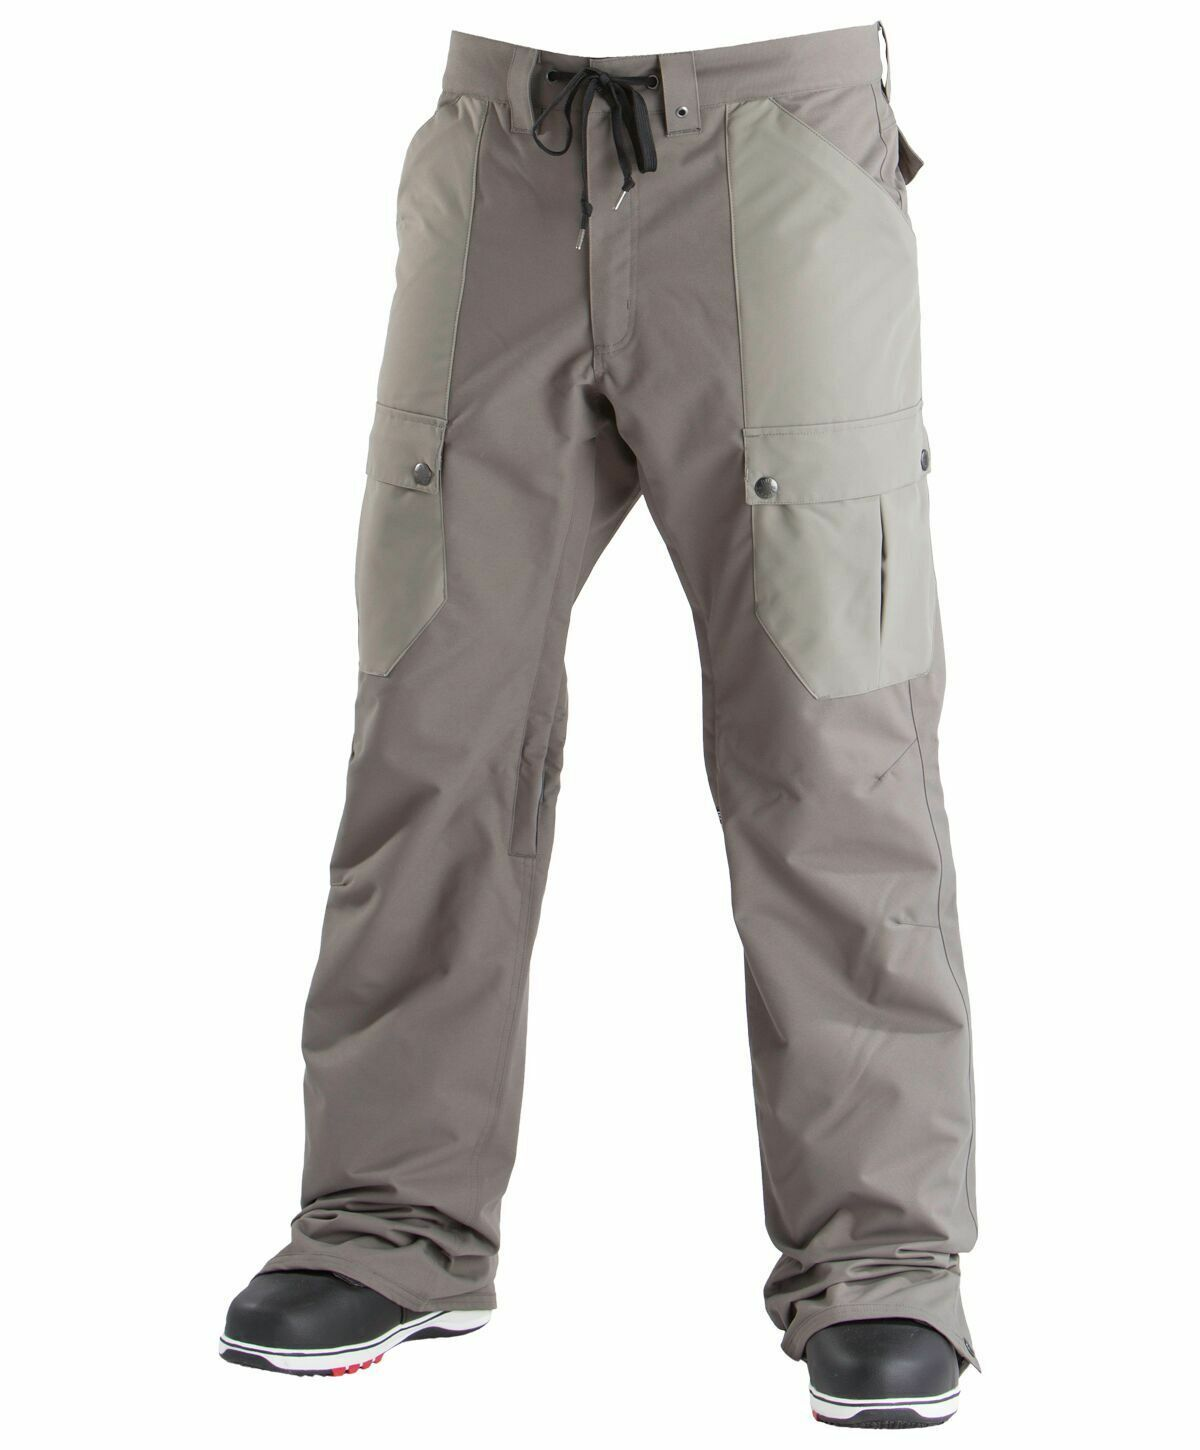 2019 NWT Airblaster  Mens Freedom Cargo Pant Pants L Large 10K Snowboard pr230  with 60% off discount